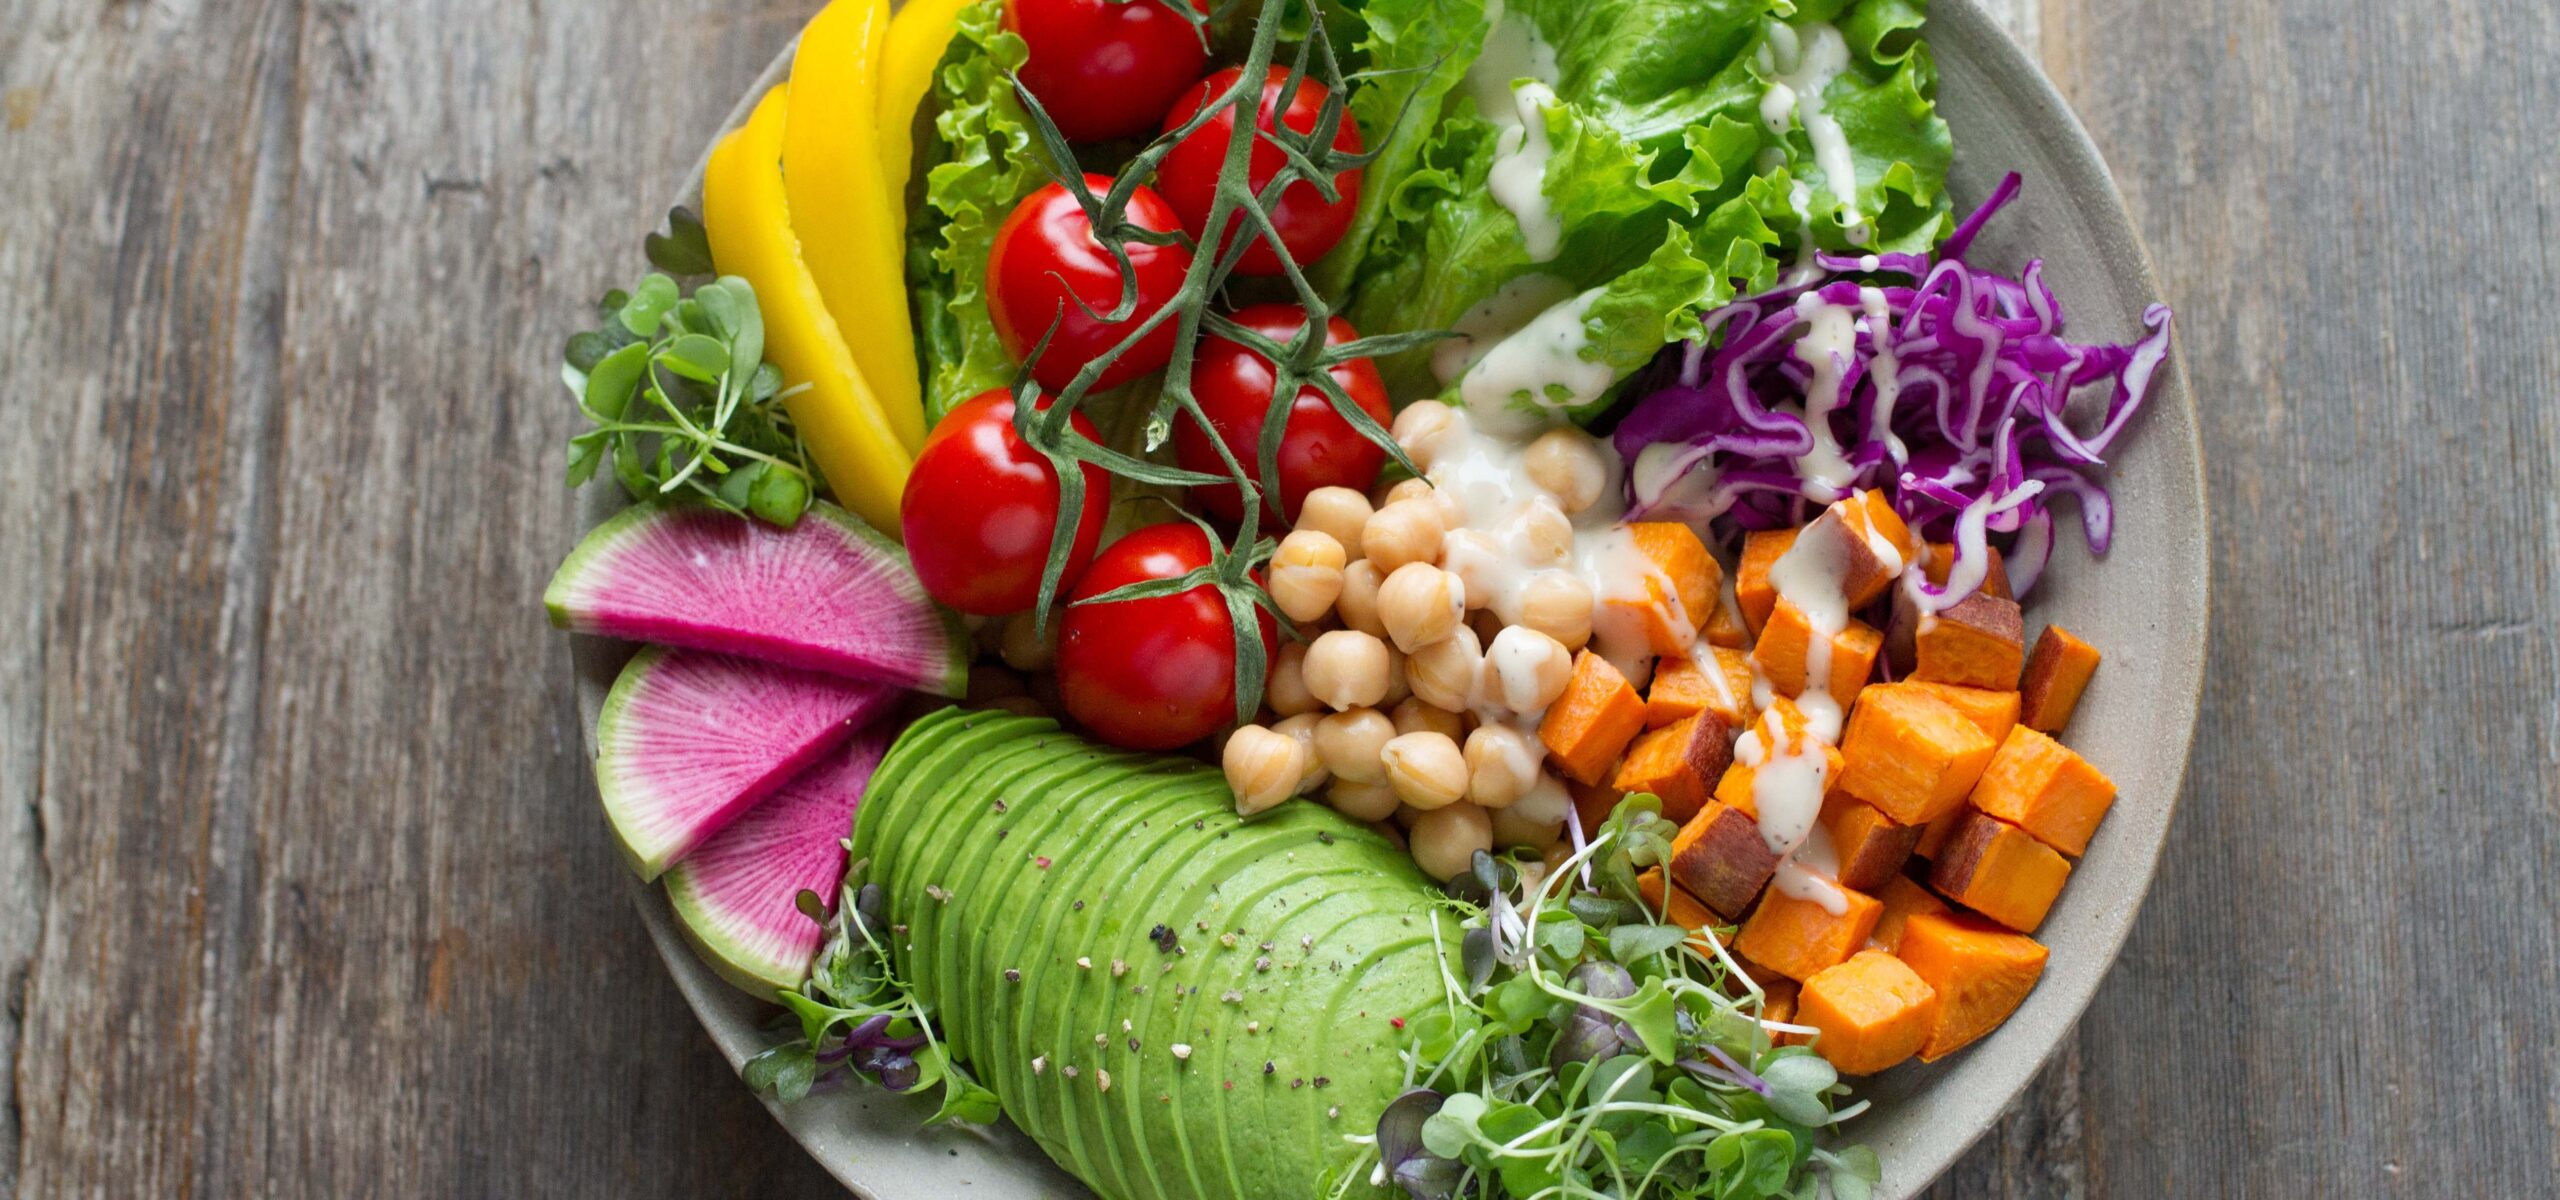 White bowl with colorful salad items such as carrots, tomatoes, and avocados.